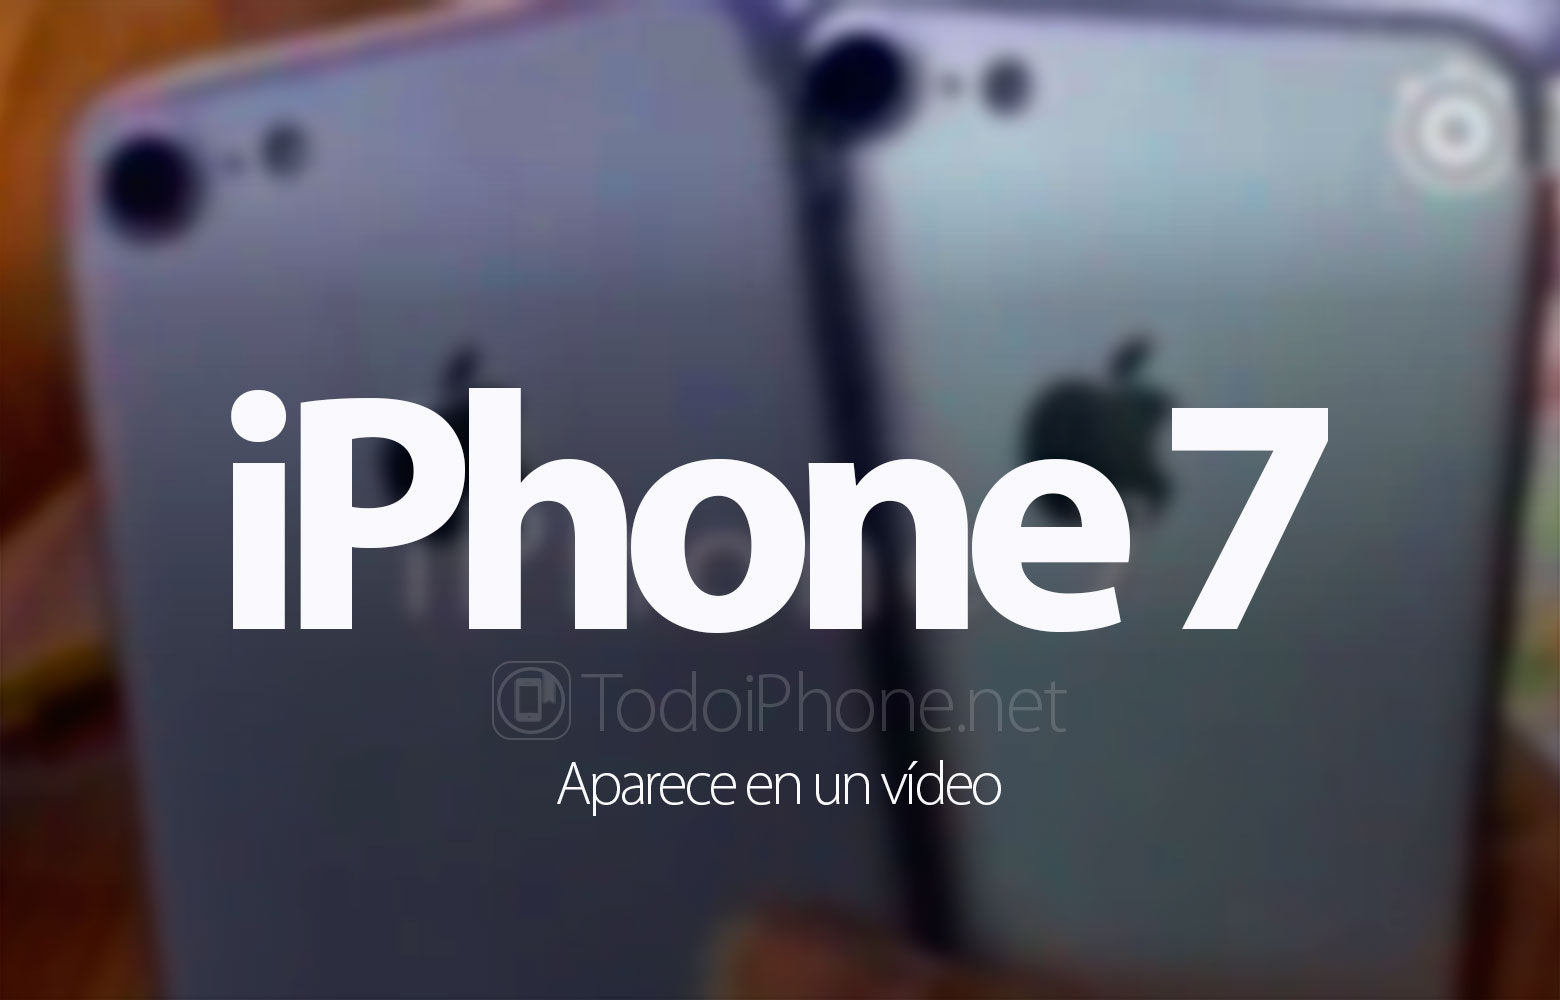 iphone-7-aparece-video